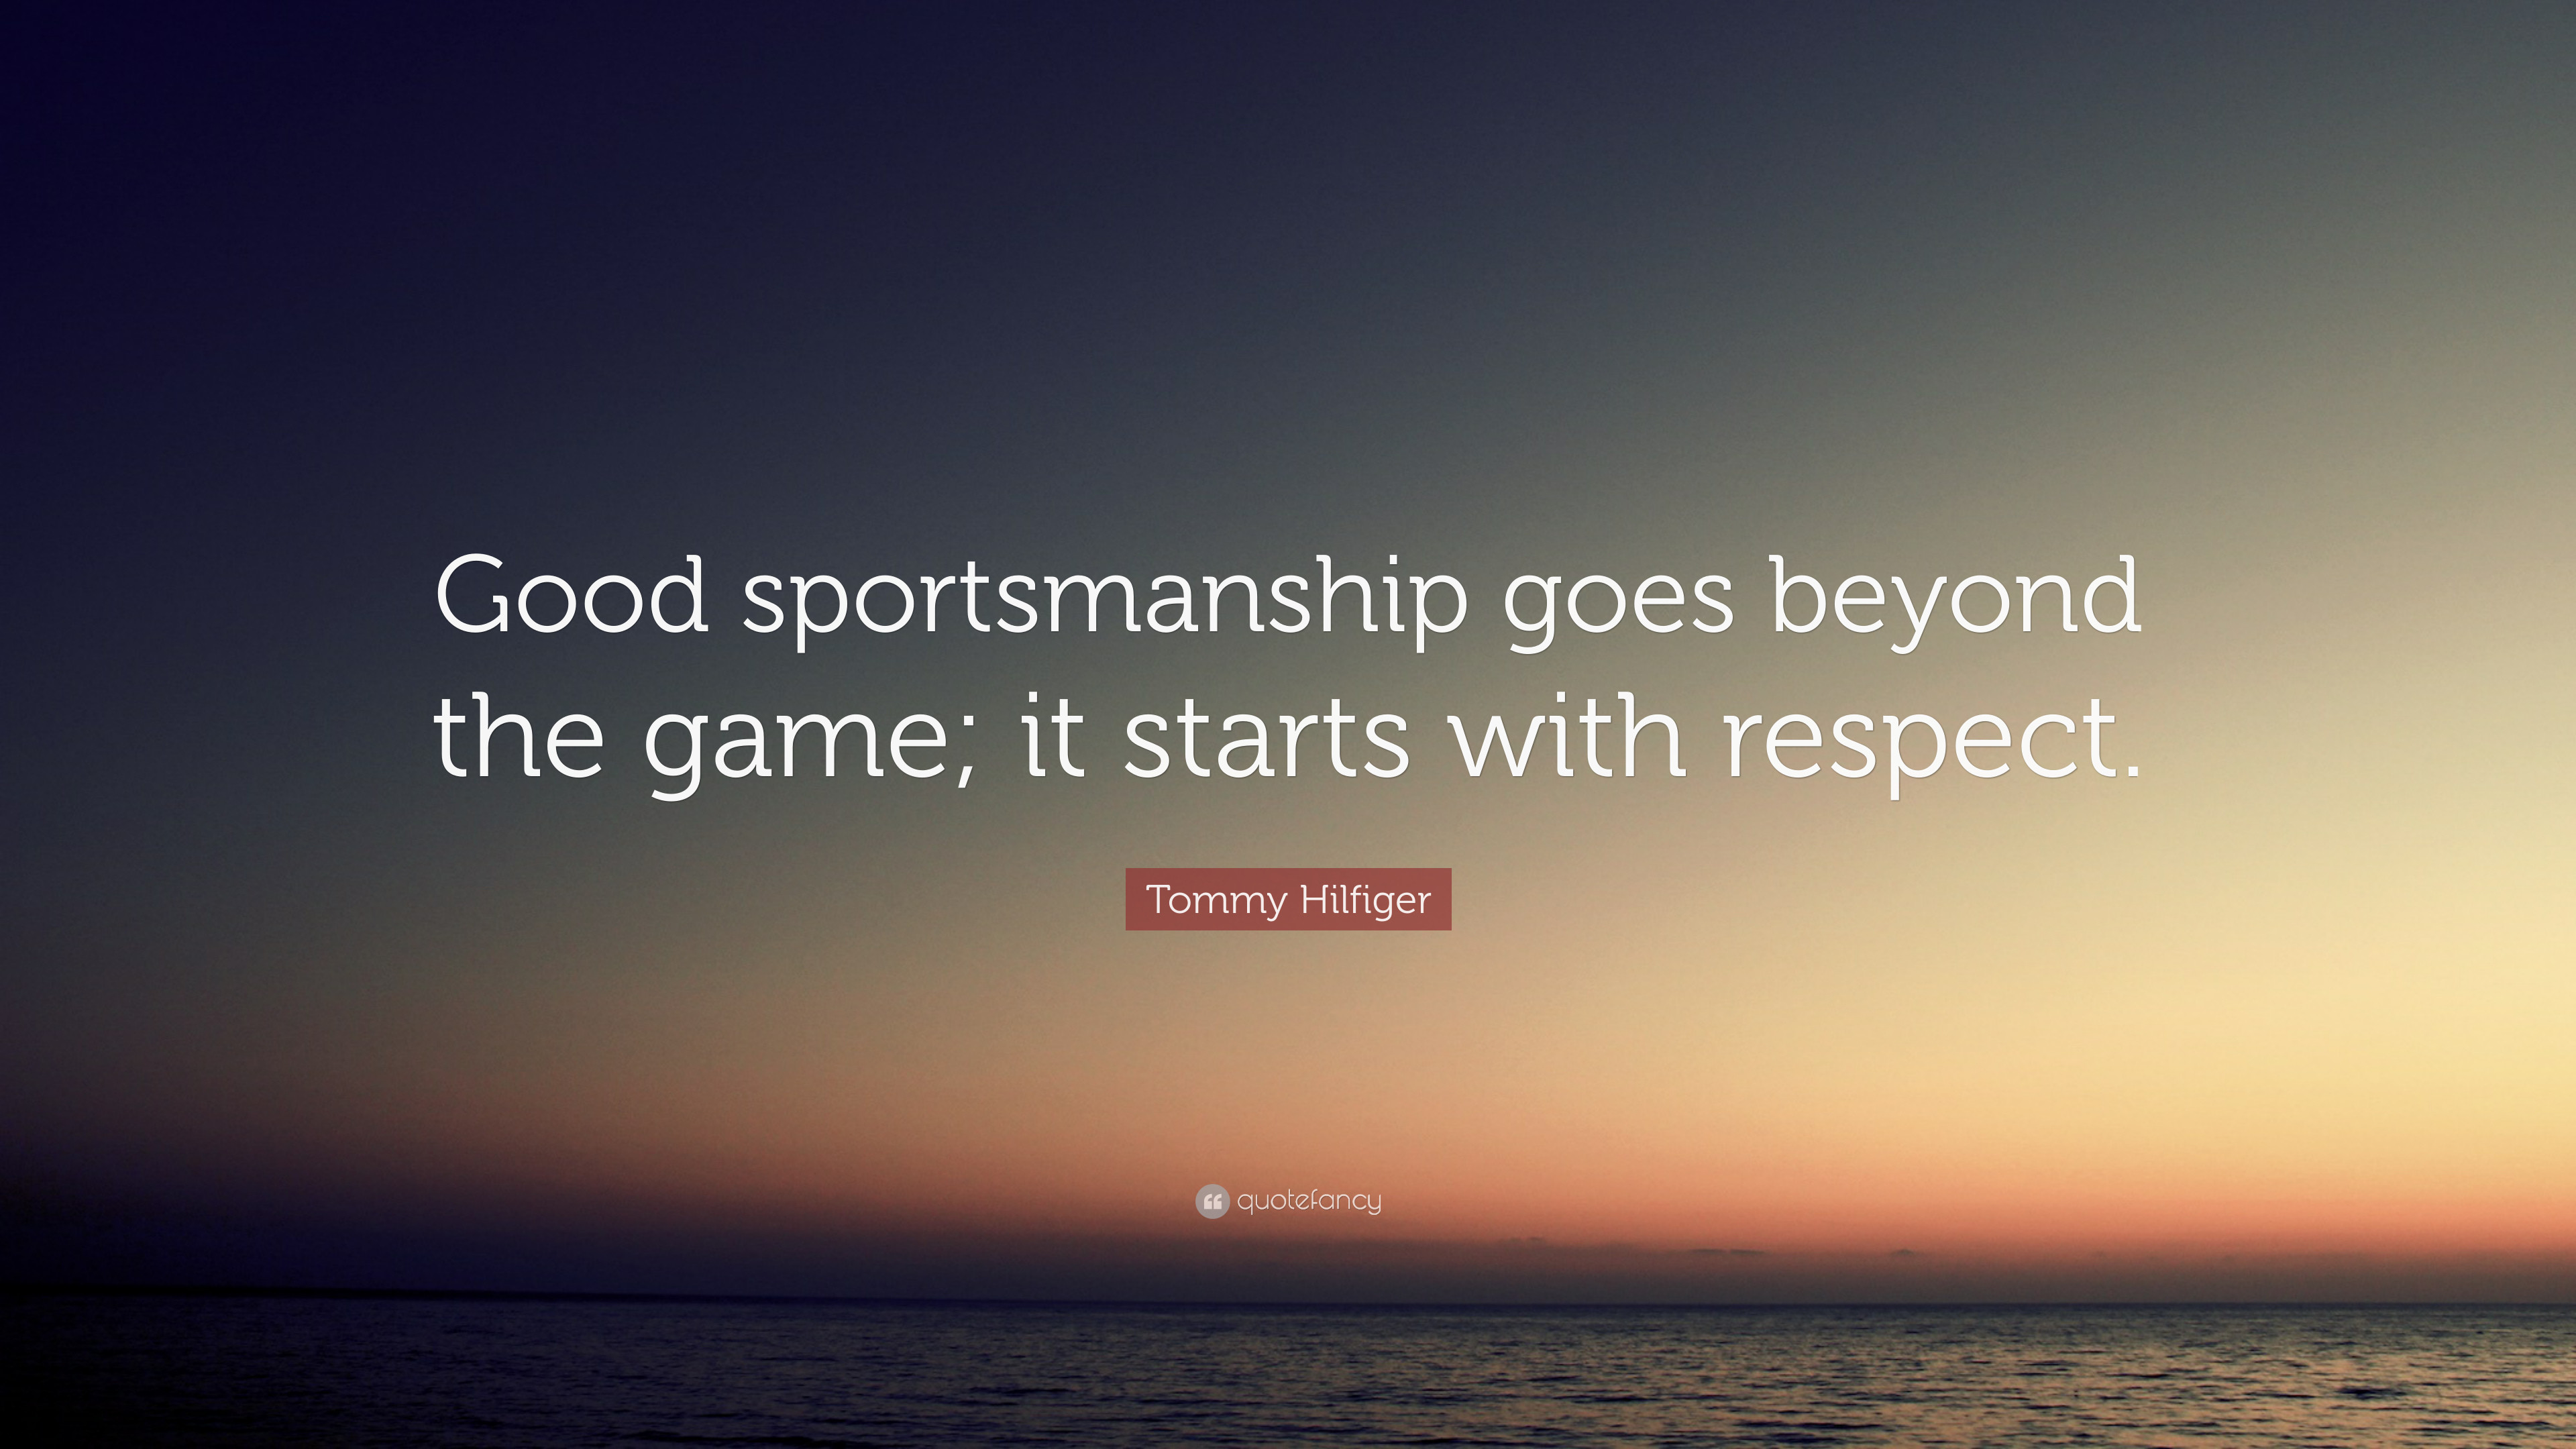 Quotes About Good Sportsmanship: Tommy Hilfiger Wallpapers (82+ Images